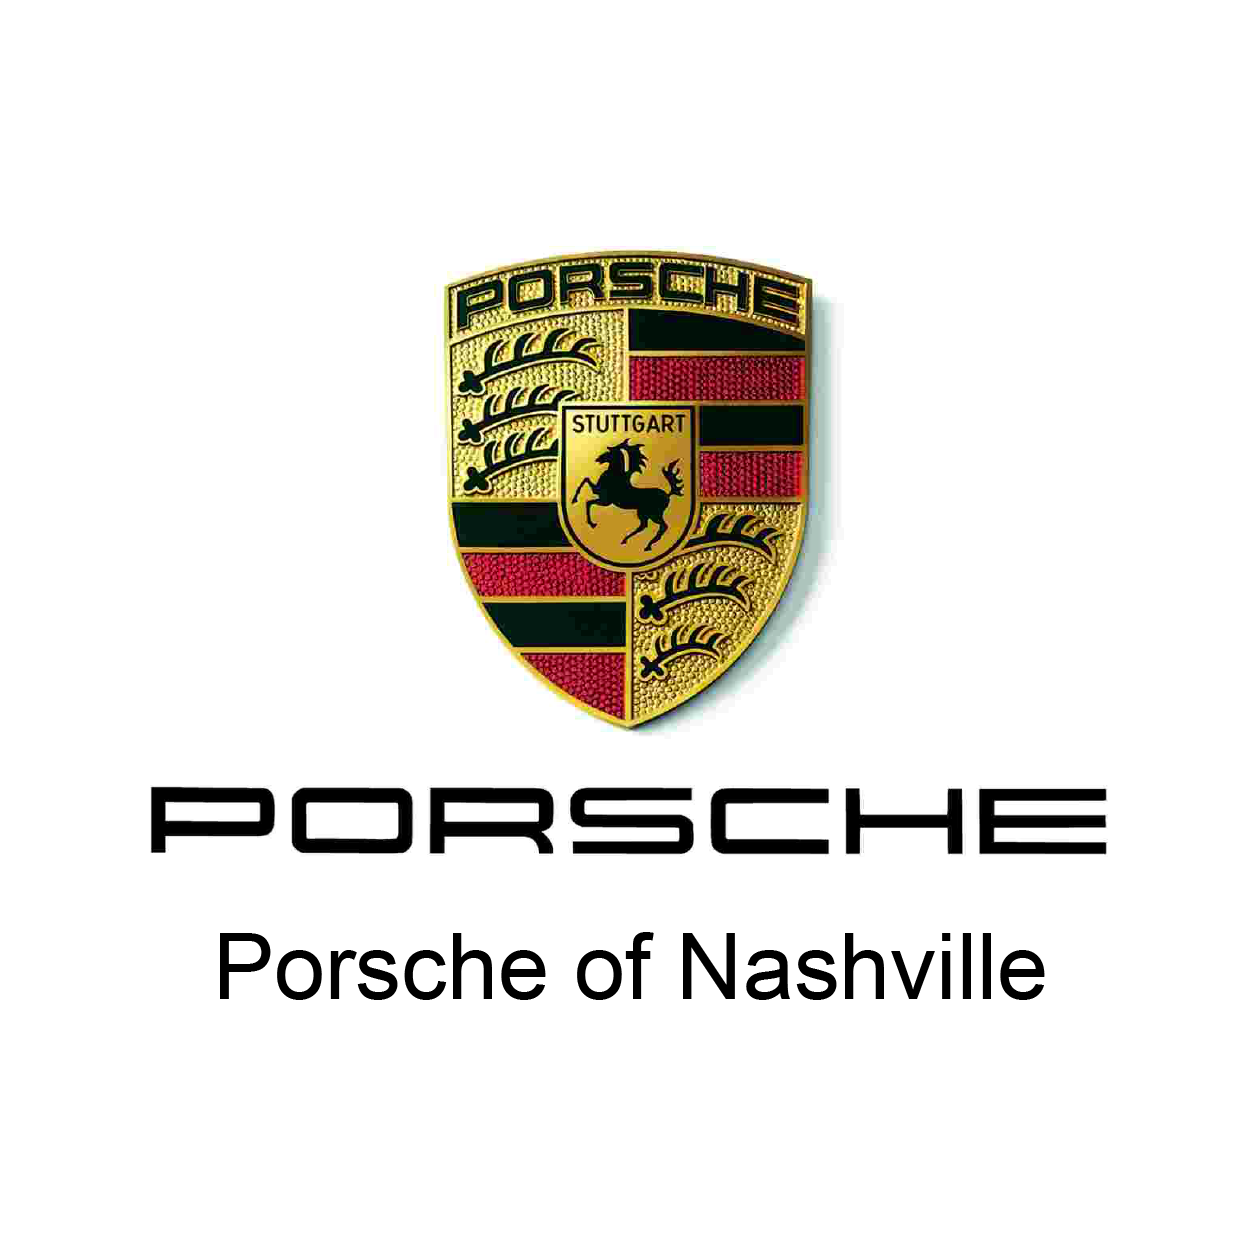 Porsche of Nashville